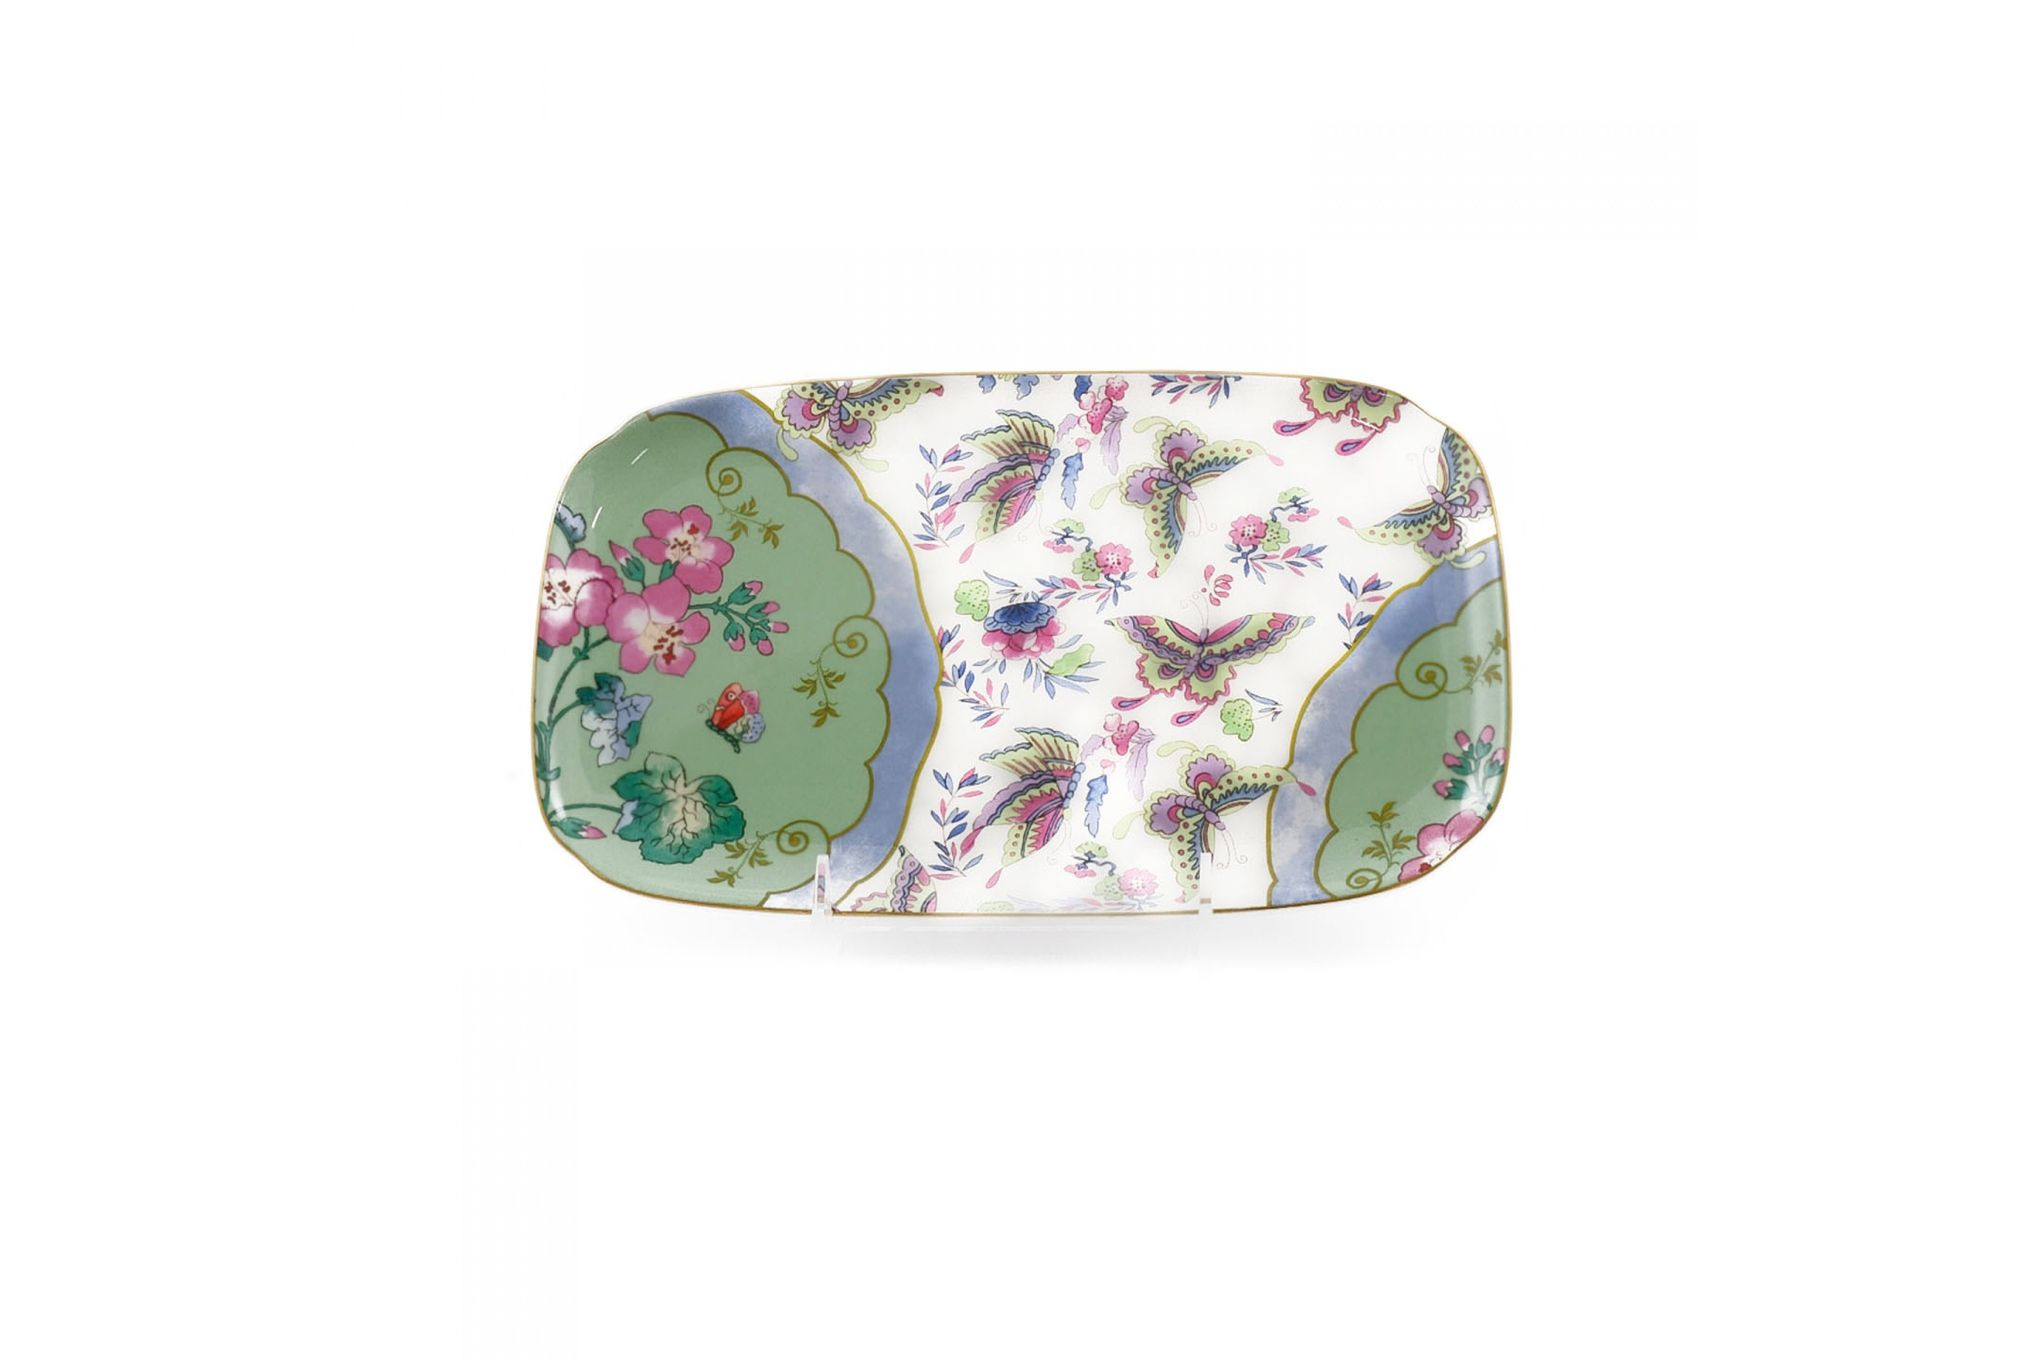 Wedgwood Butterfly Bloom Sandwich Tray Blue Peony thumb 2